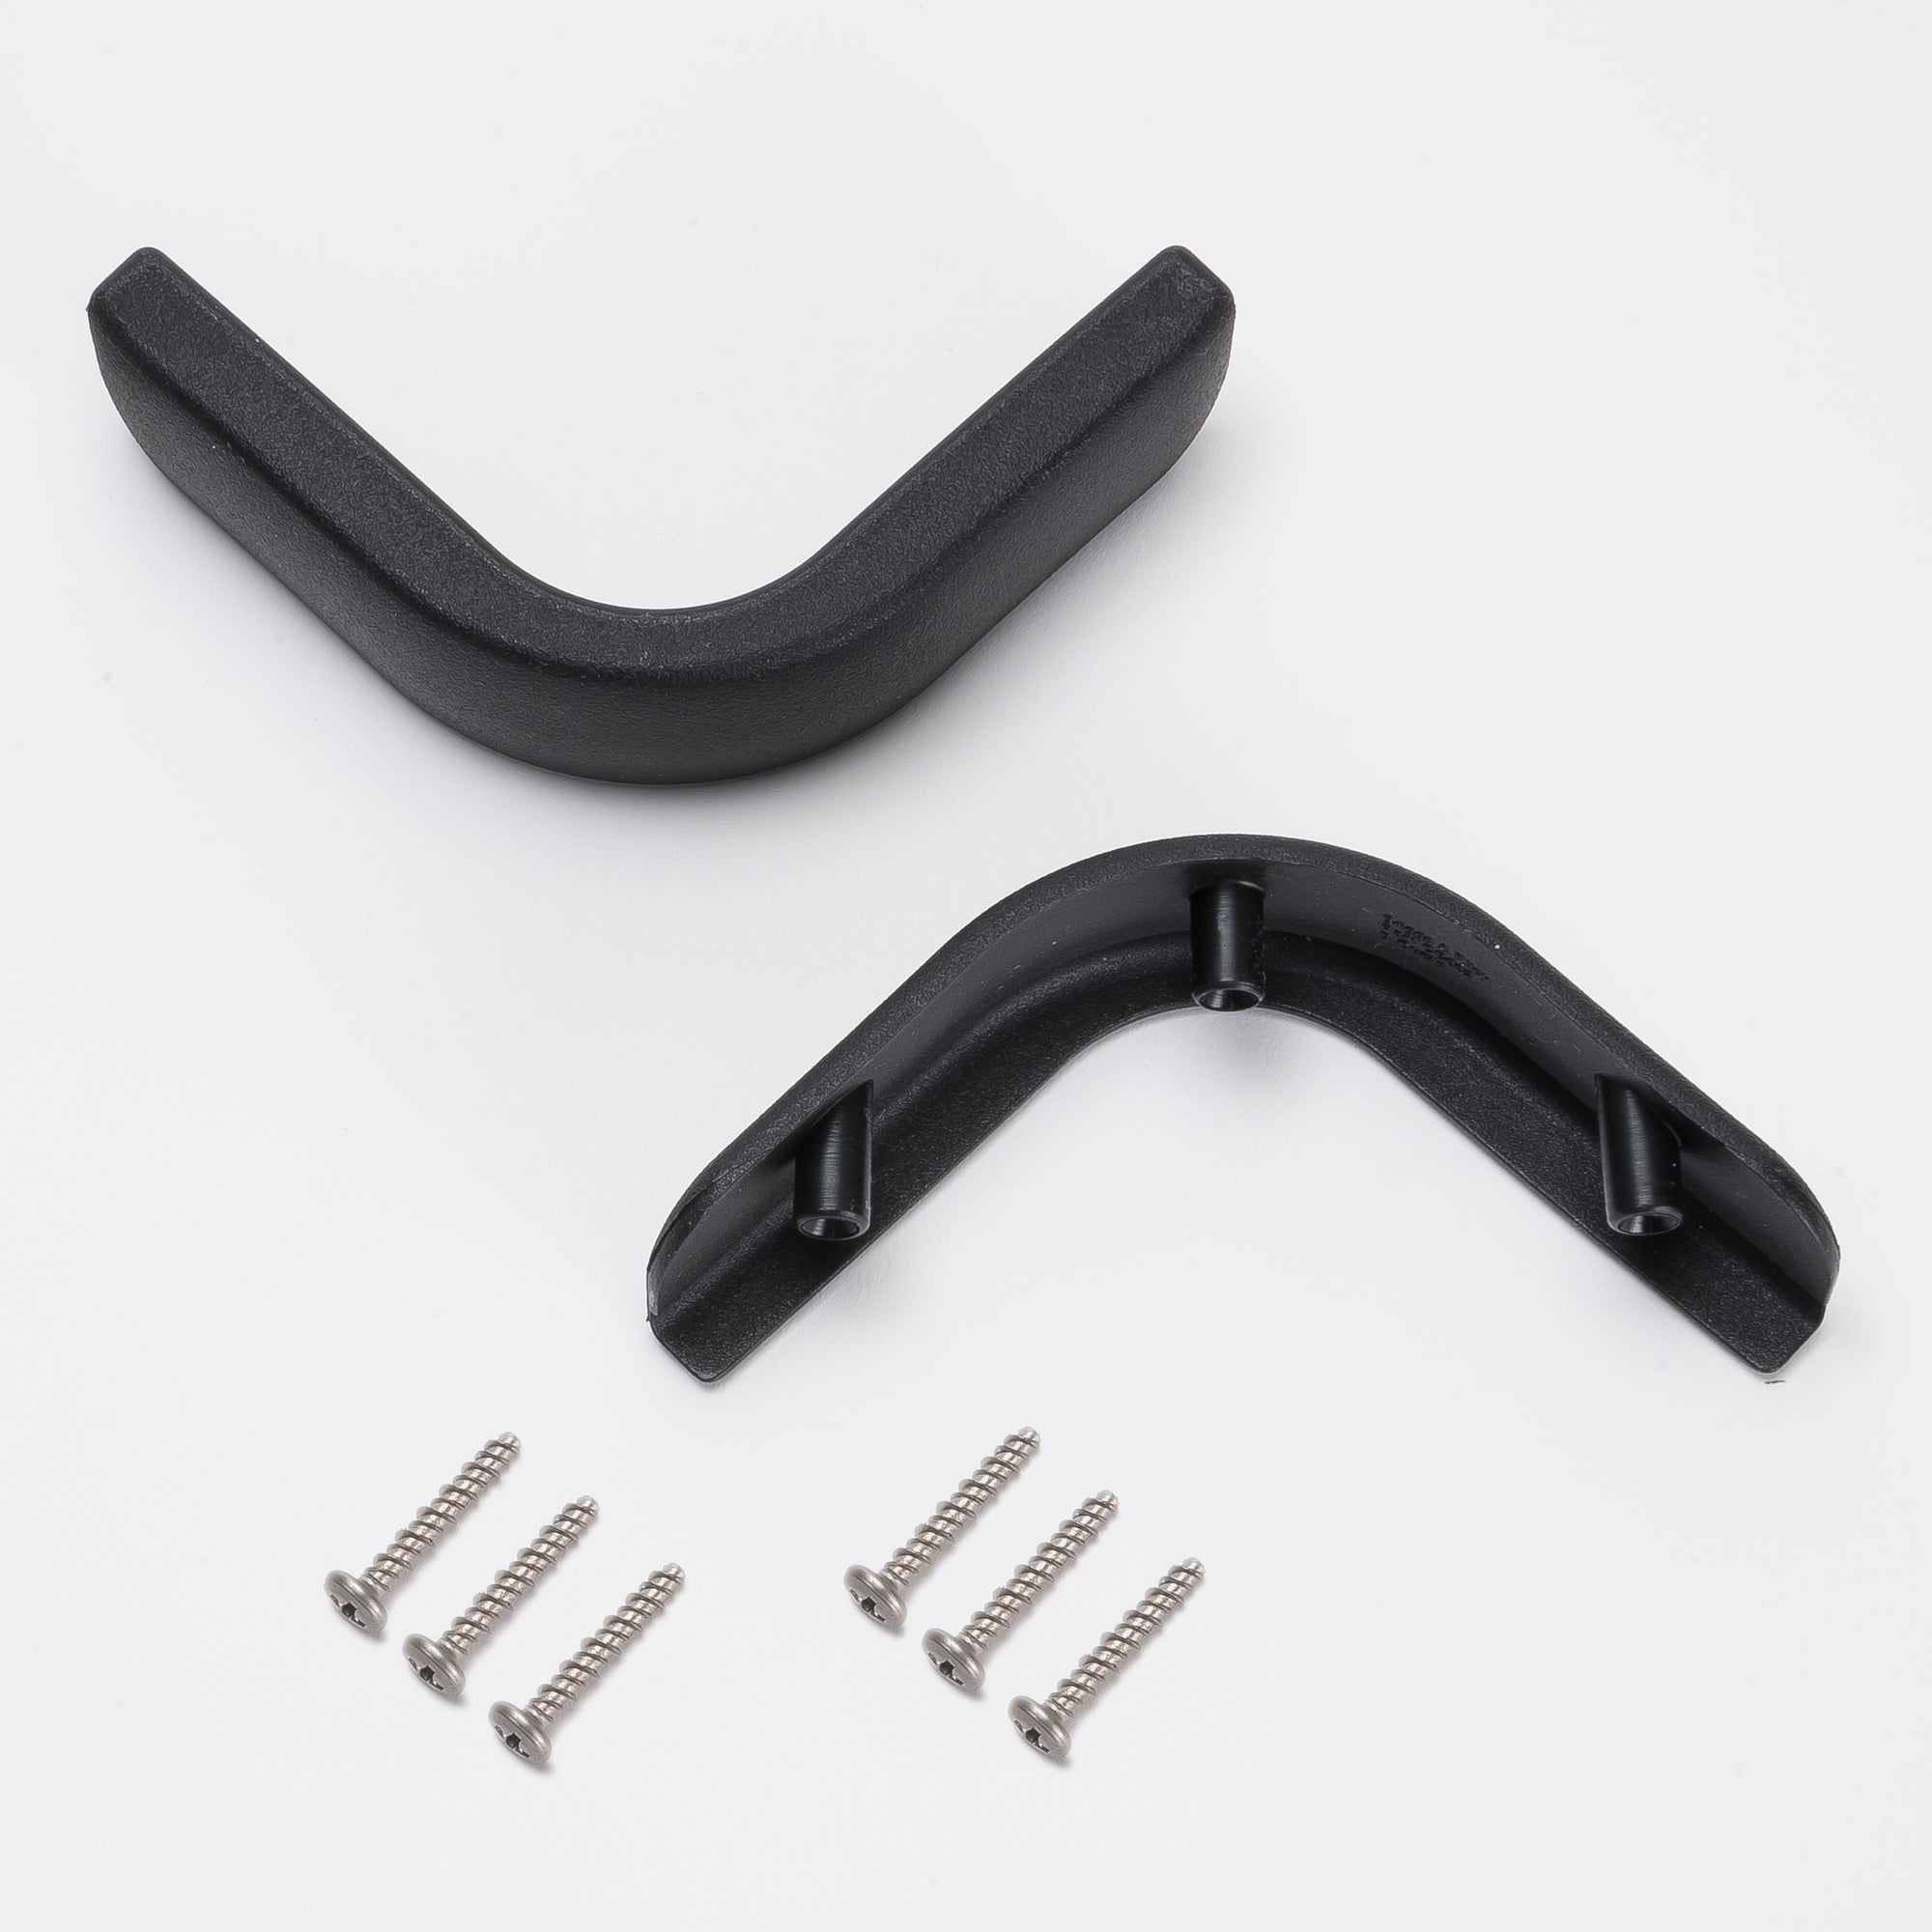 Baseline Spinner Rear Corner Guard Repair Kit